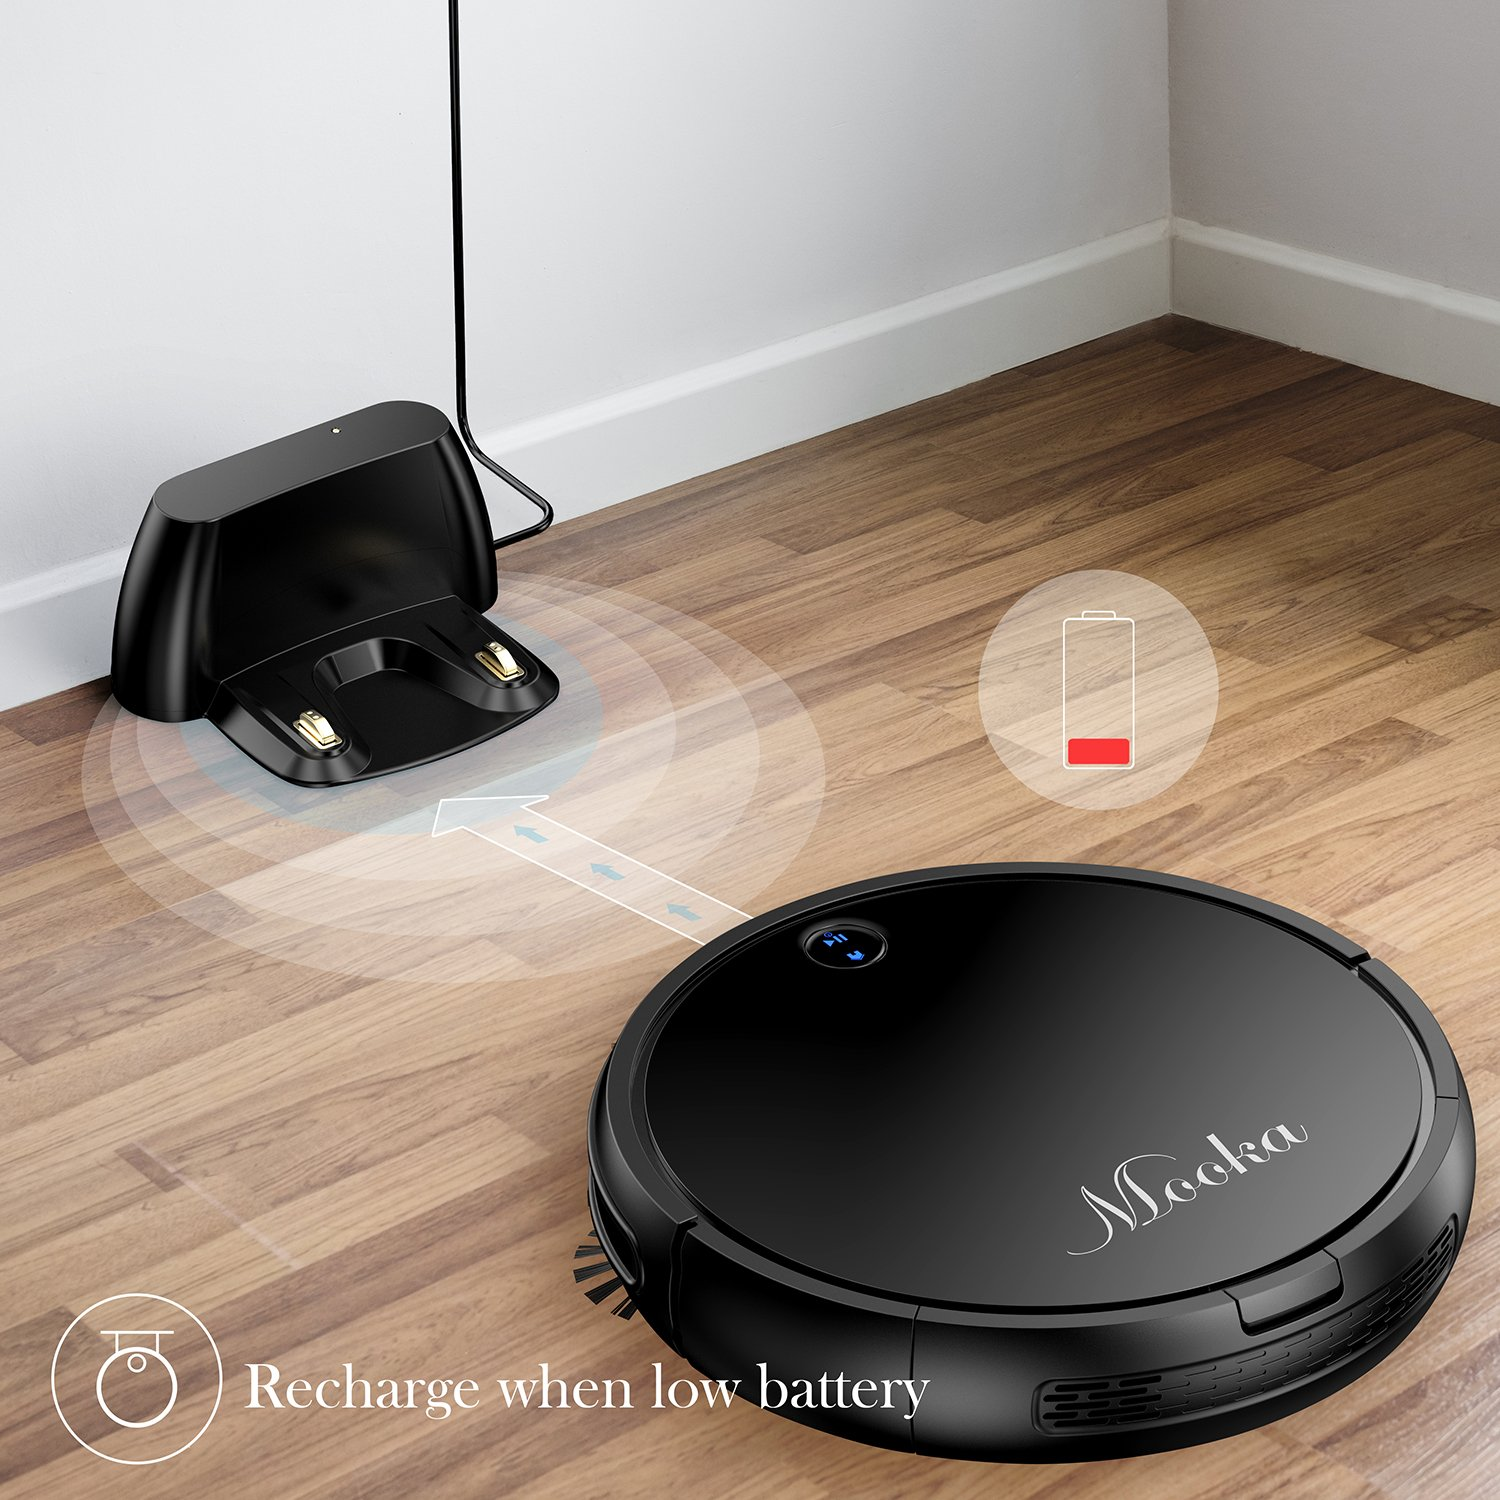 MOOKA Robotic Vacuum Cleaner, Tangle-free Suction for Pet Hair, Anti-bump and Drop-sensing Technology